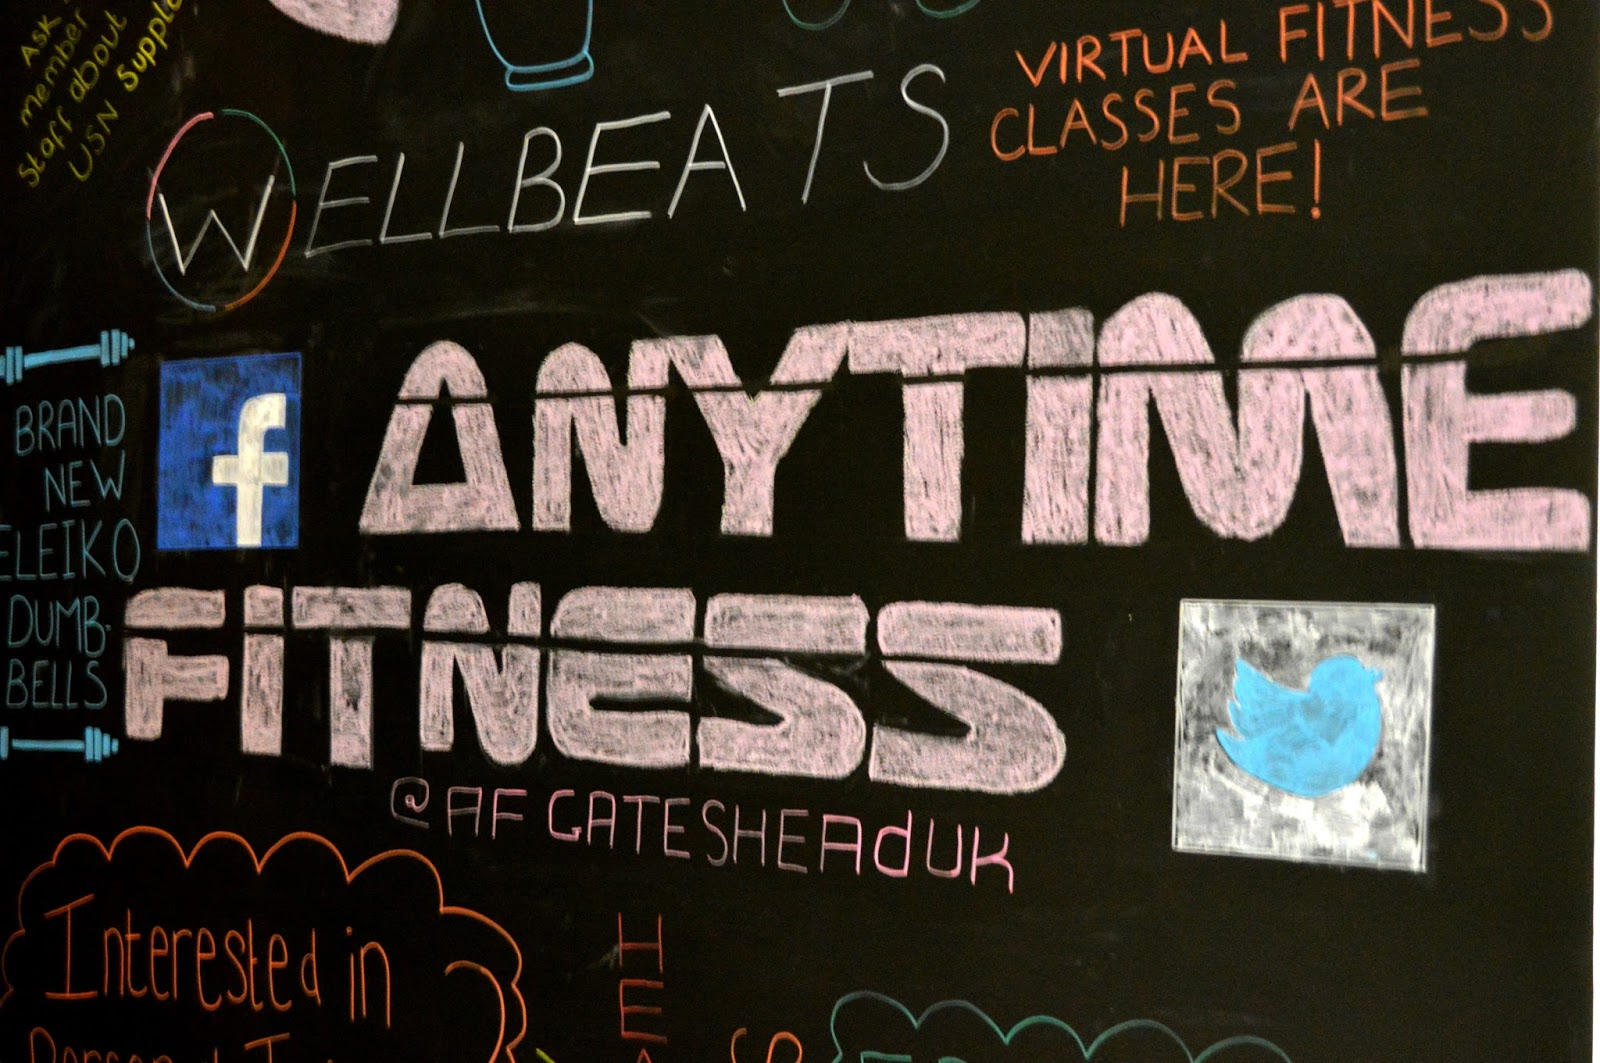 Anytime Fitness: Gateshead Review